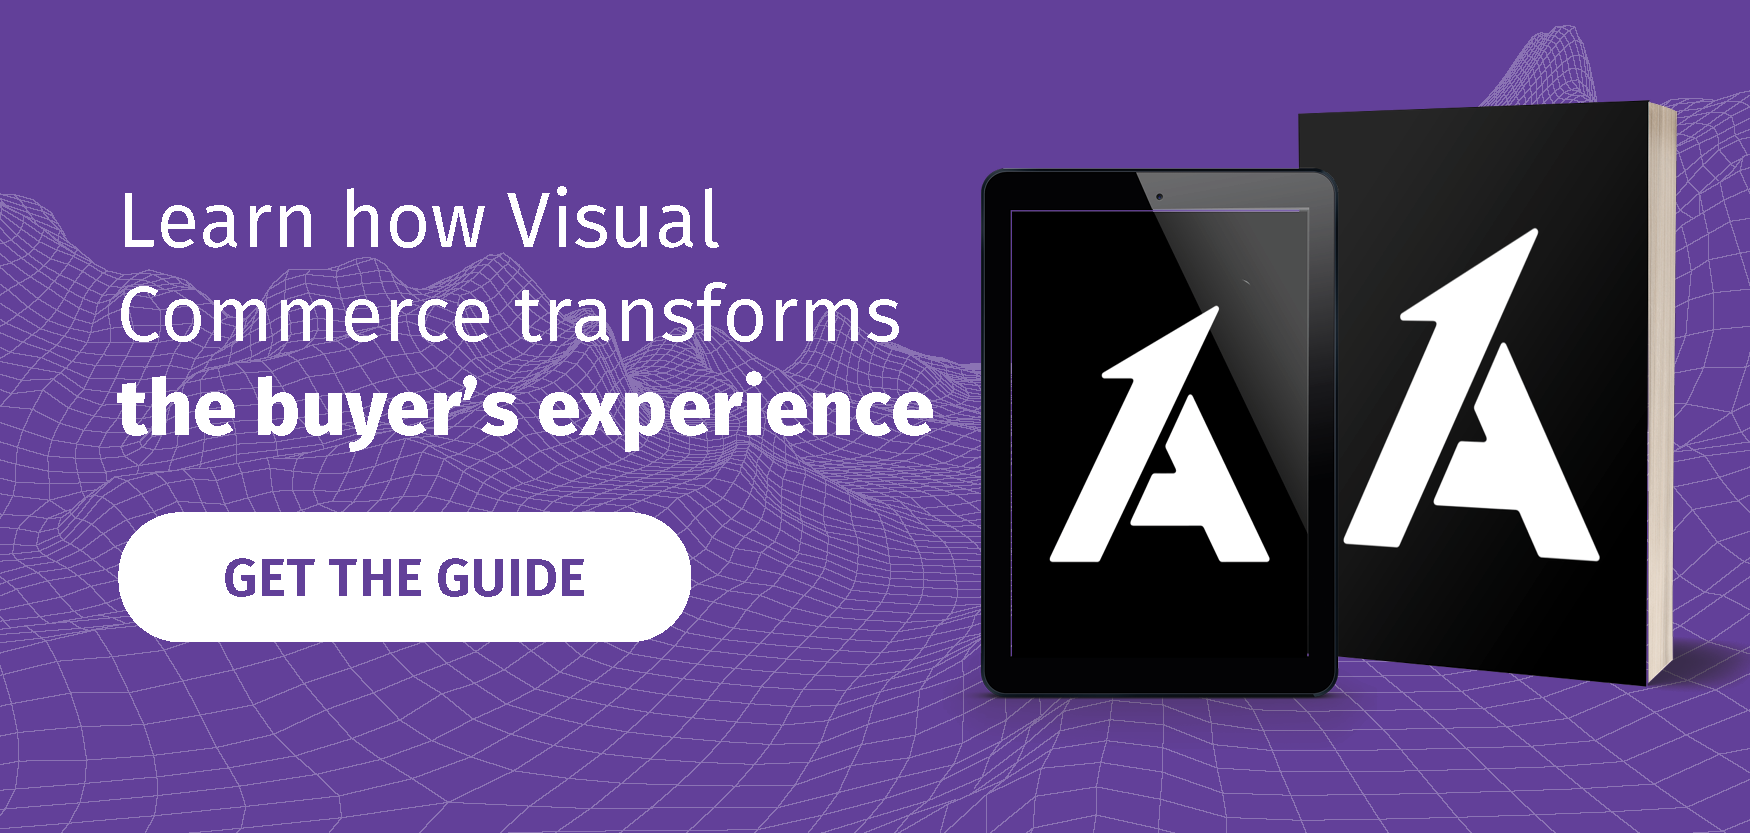 Learn how Visual Commerce transforms the buyer's experience